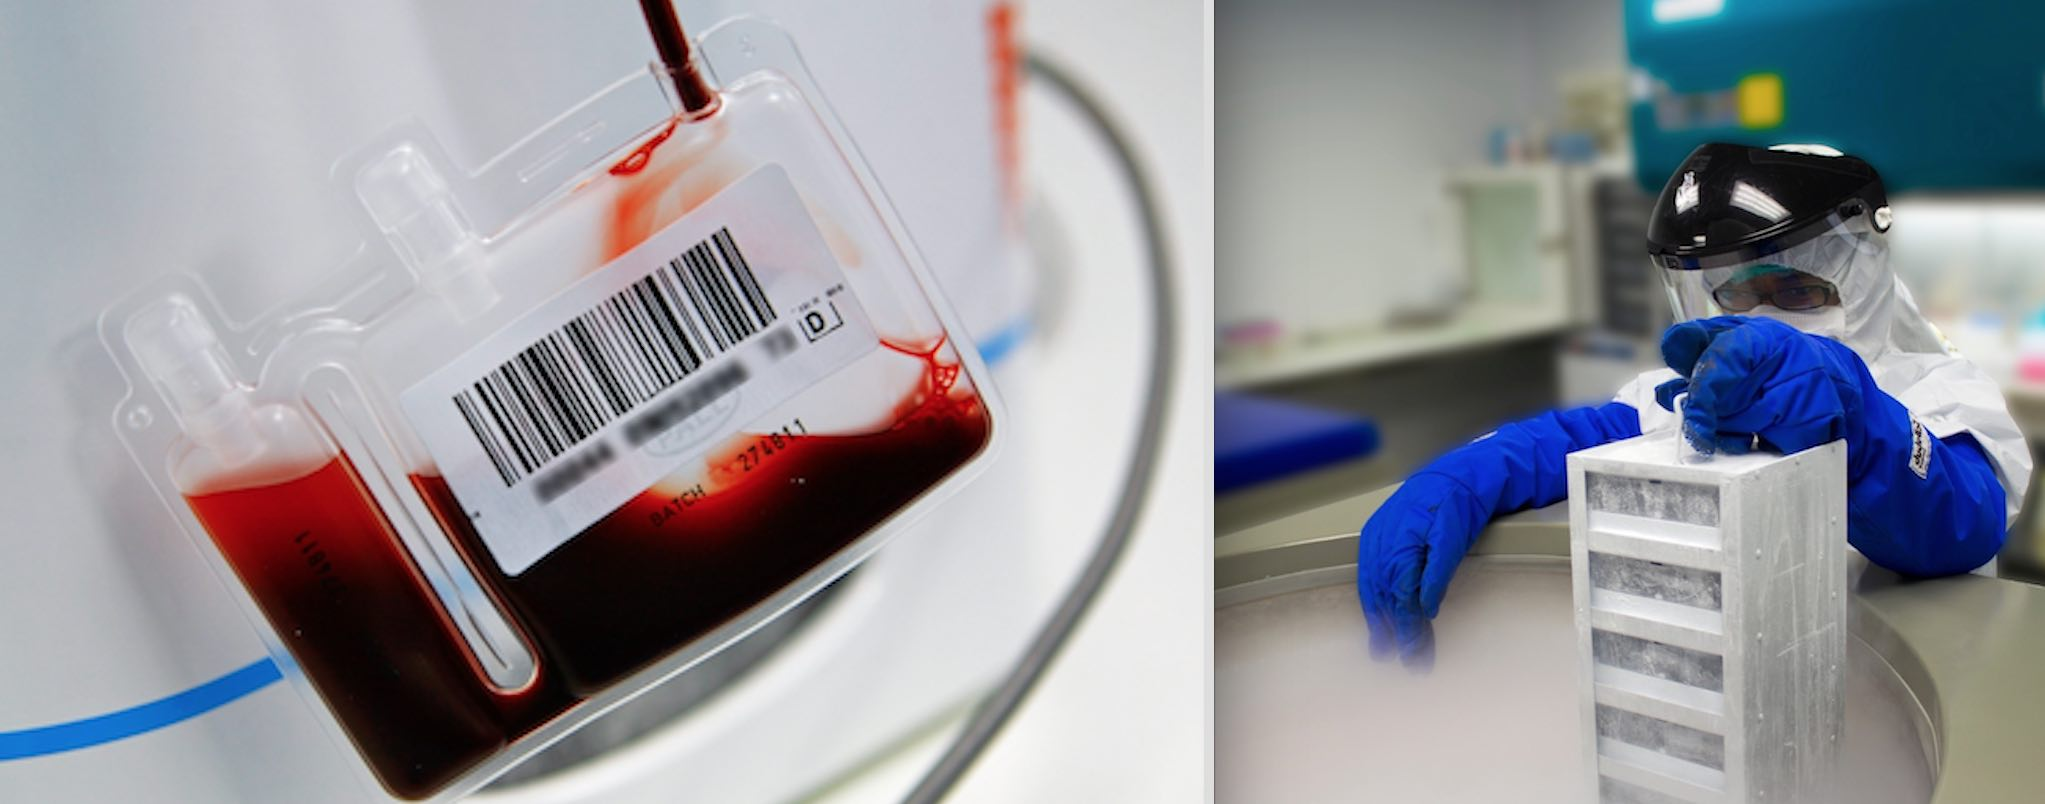 Umbilical cord blood prepped for stem cell storage   (all photos courtesy of Smart Cells)